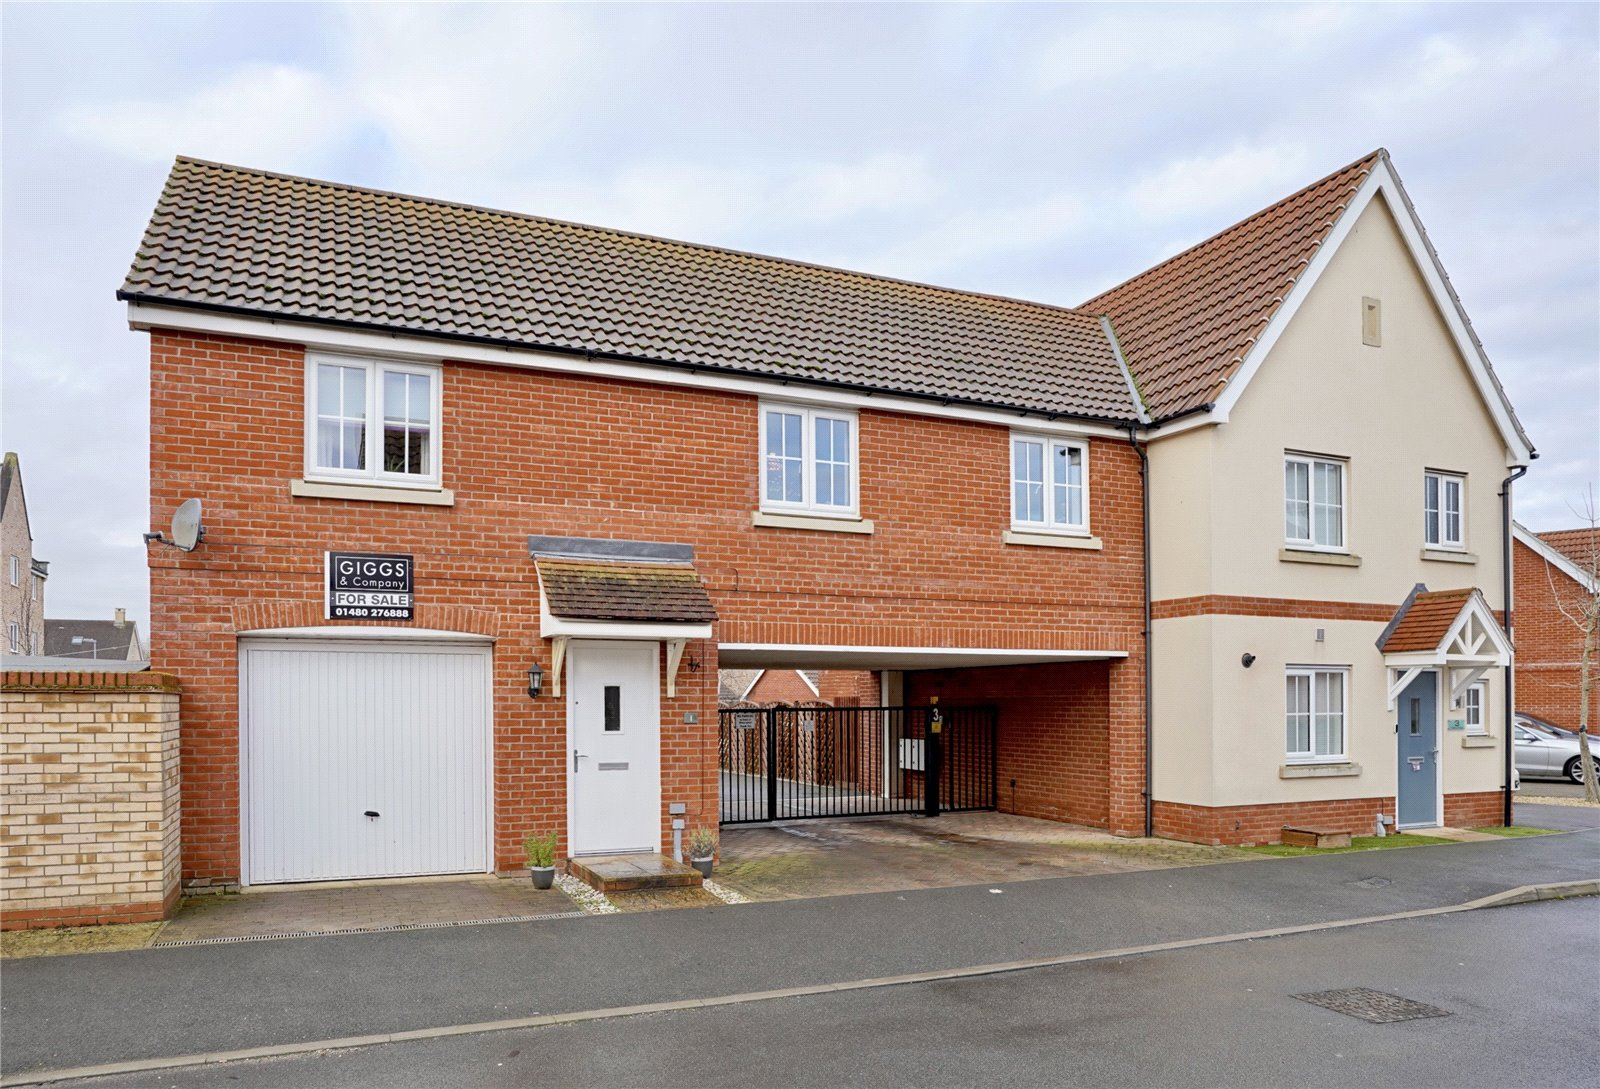 2 bed house for sale in Eynesbury, PE19 2LF, PE19